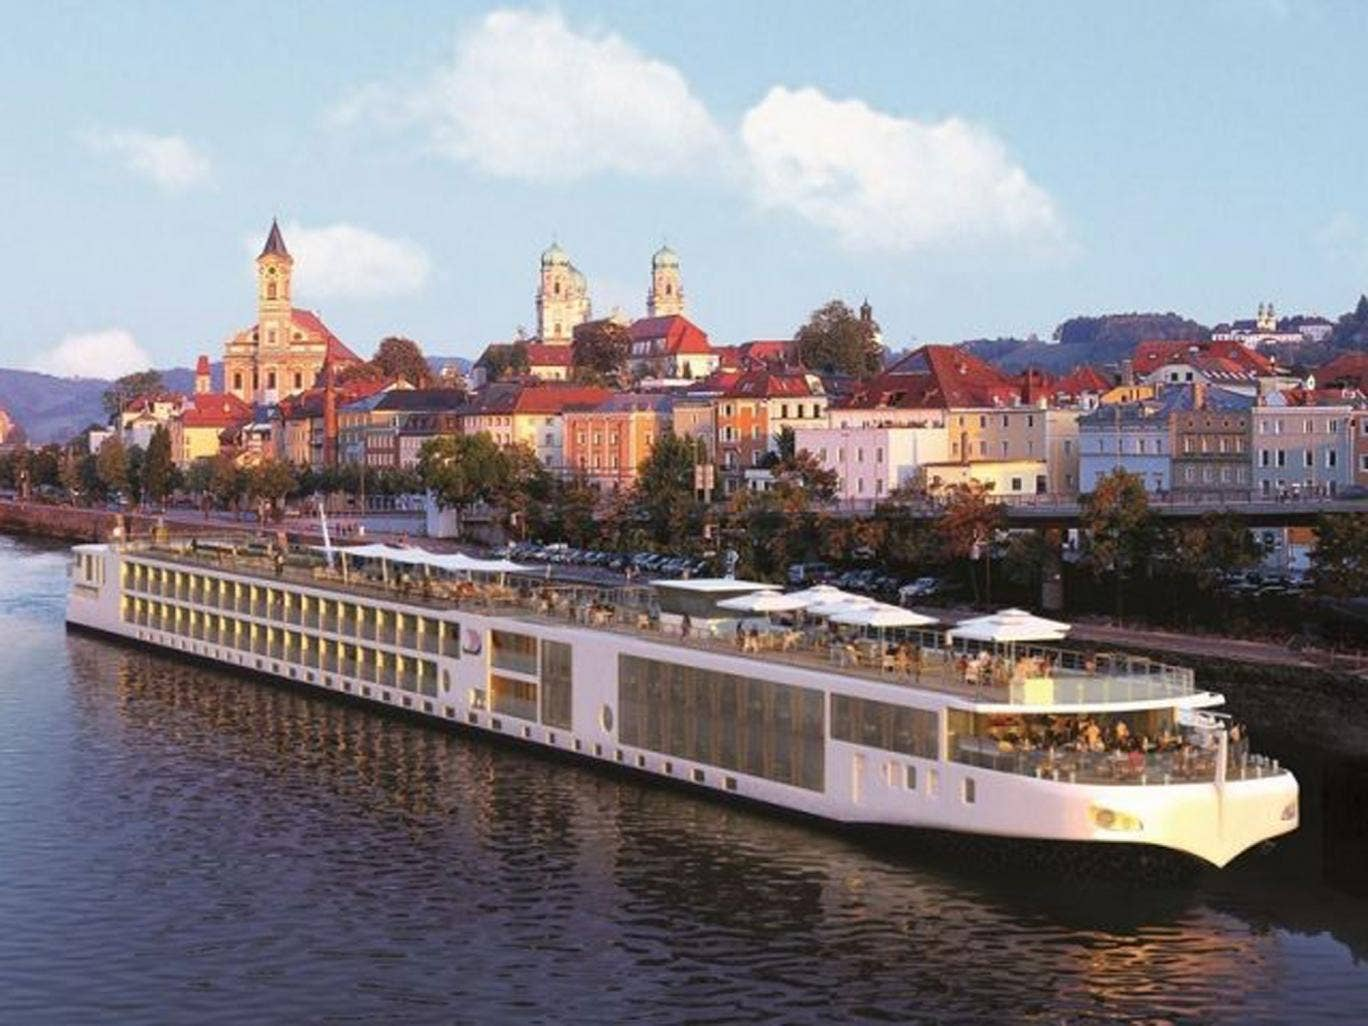 Ripple effect: A Viking River Cruises vessel on the Danube